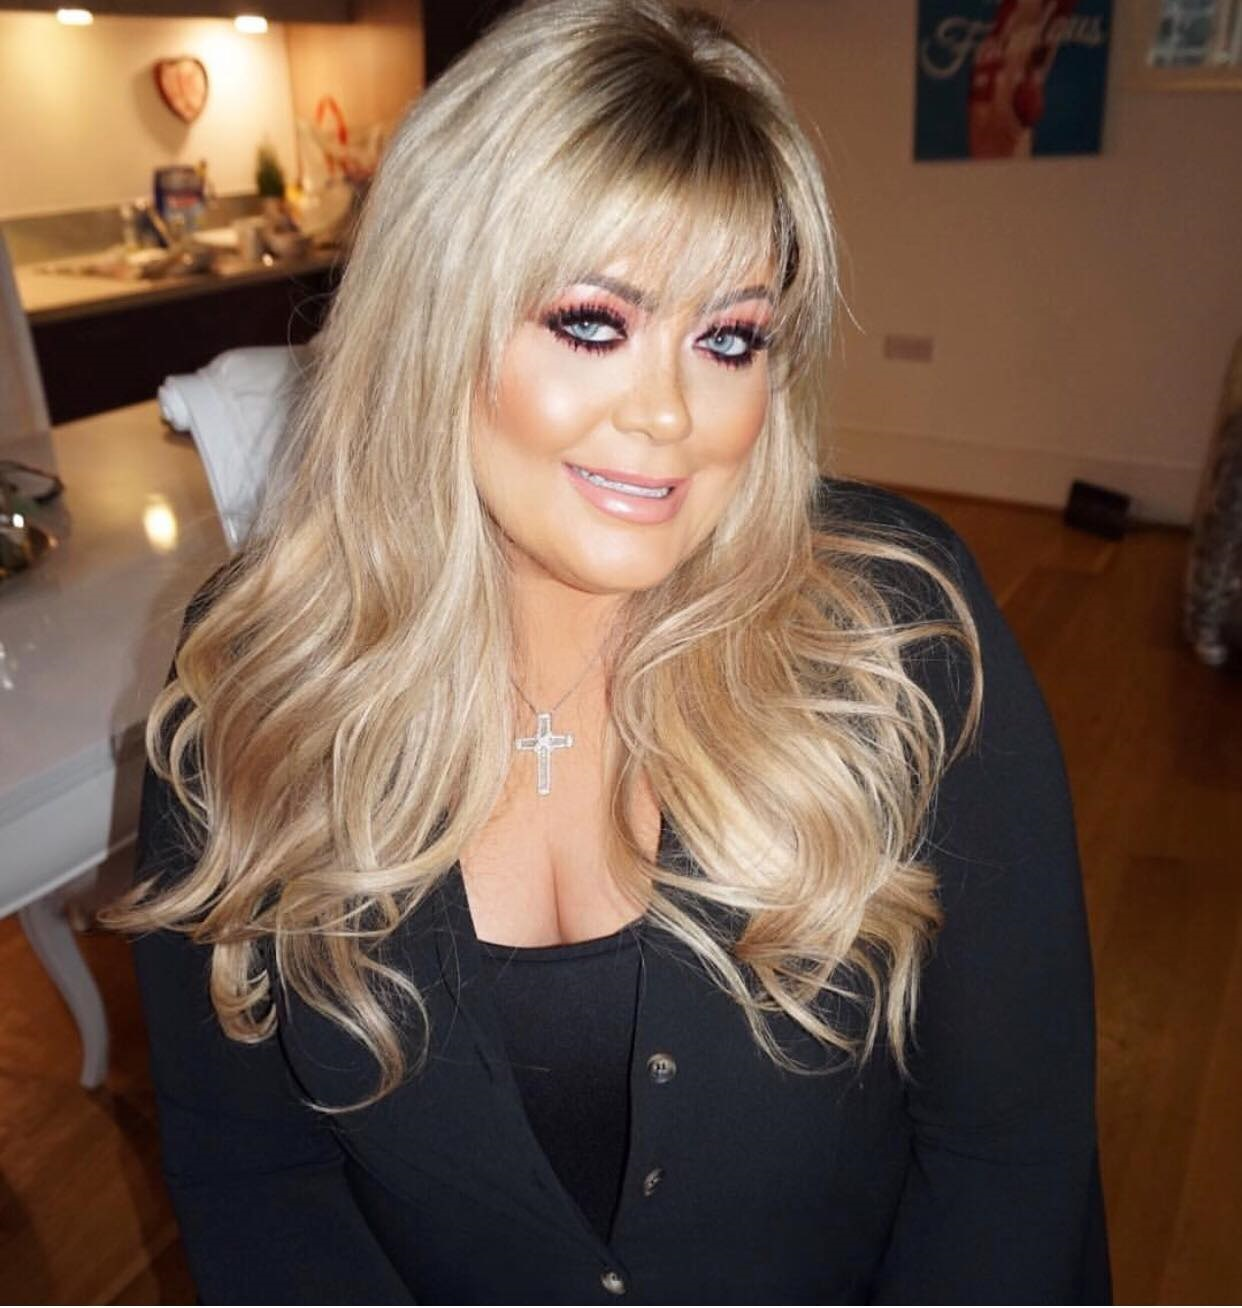 Gemma Collins Has Beautiful New Hair Extensions For Dancing On Ice